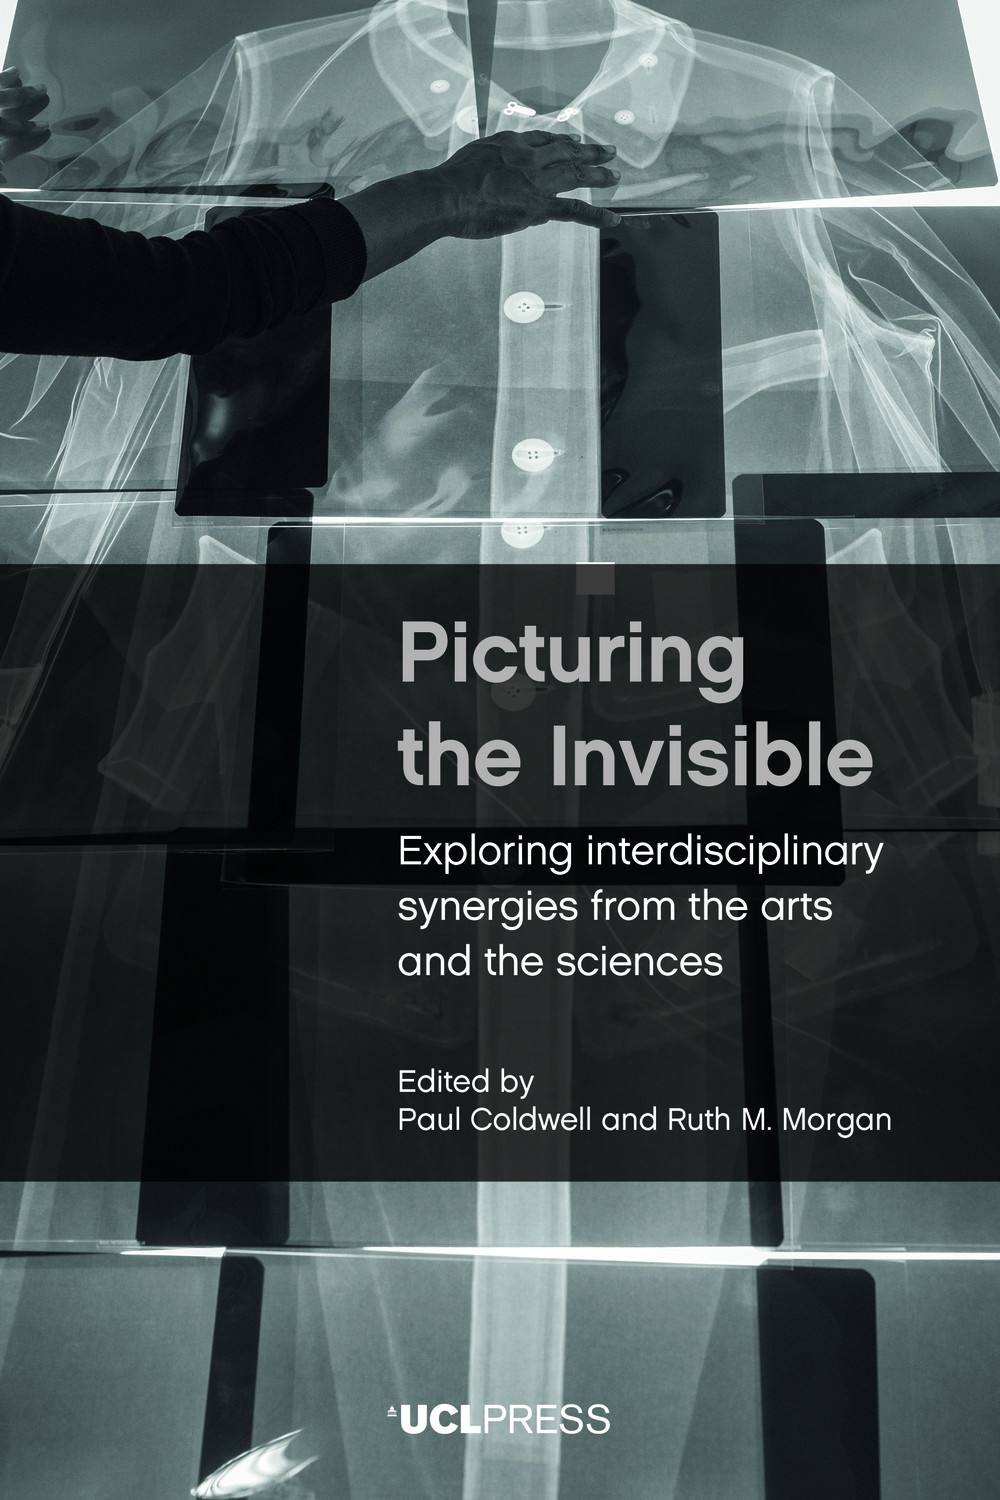 Picturing the Invisible